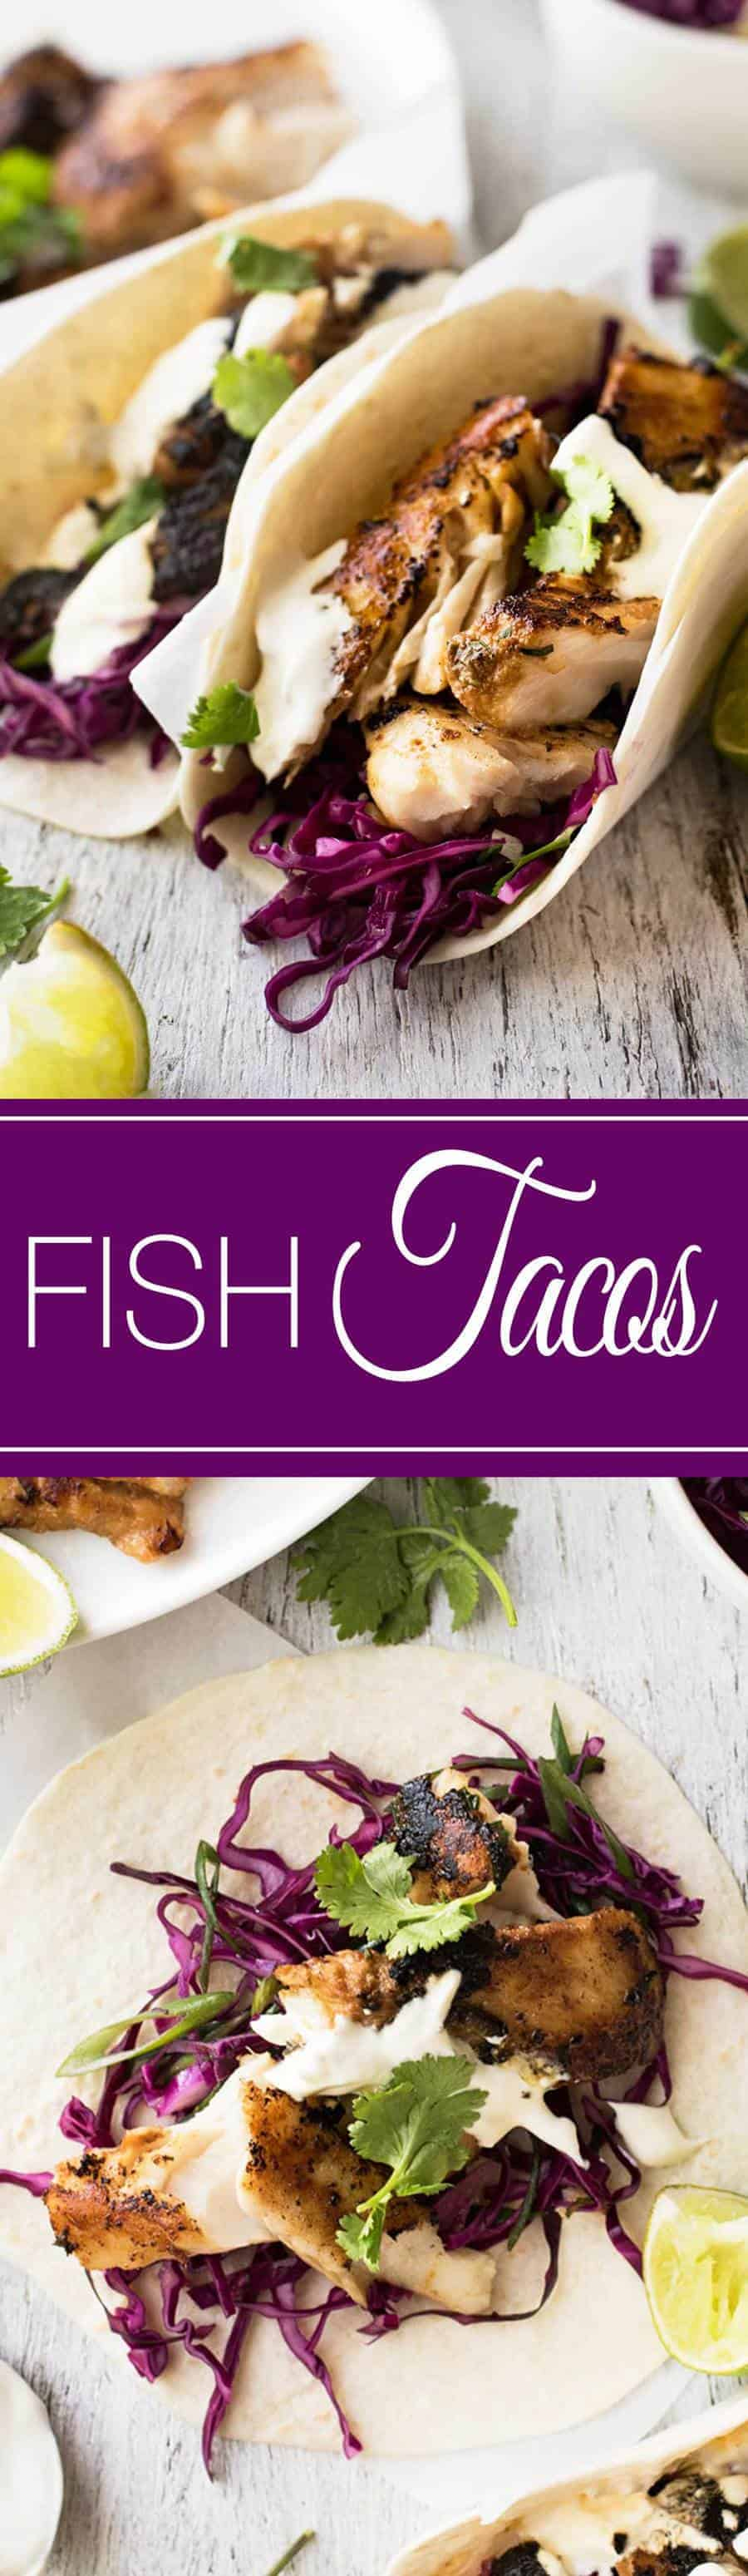 Marinated Fish Tacos | I've been asked for the marinade for these tacos so many times!